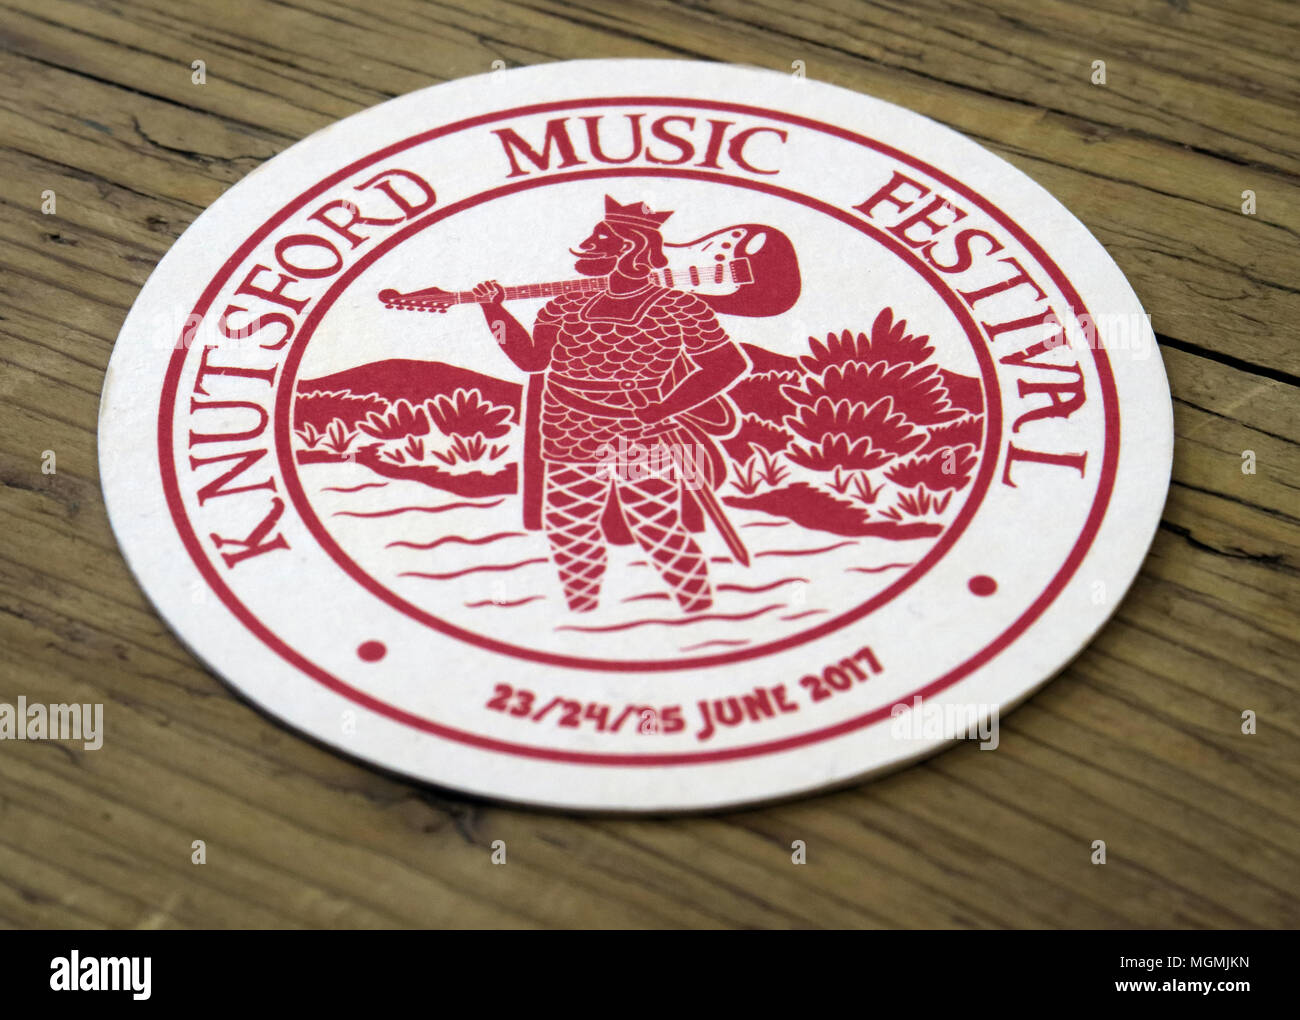 Knutsford Music Festival beermat, Cheshire, GB - Stock Image